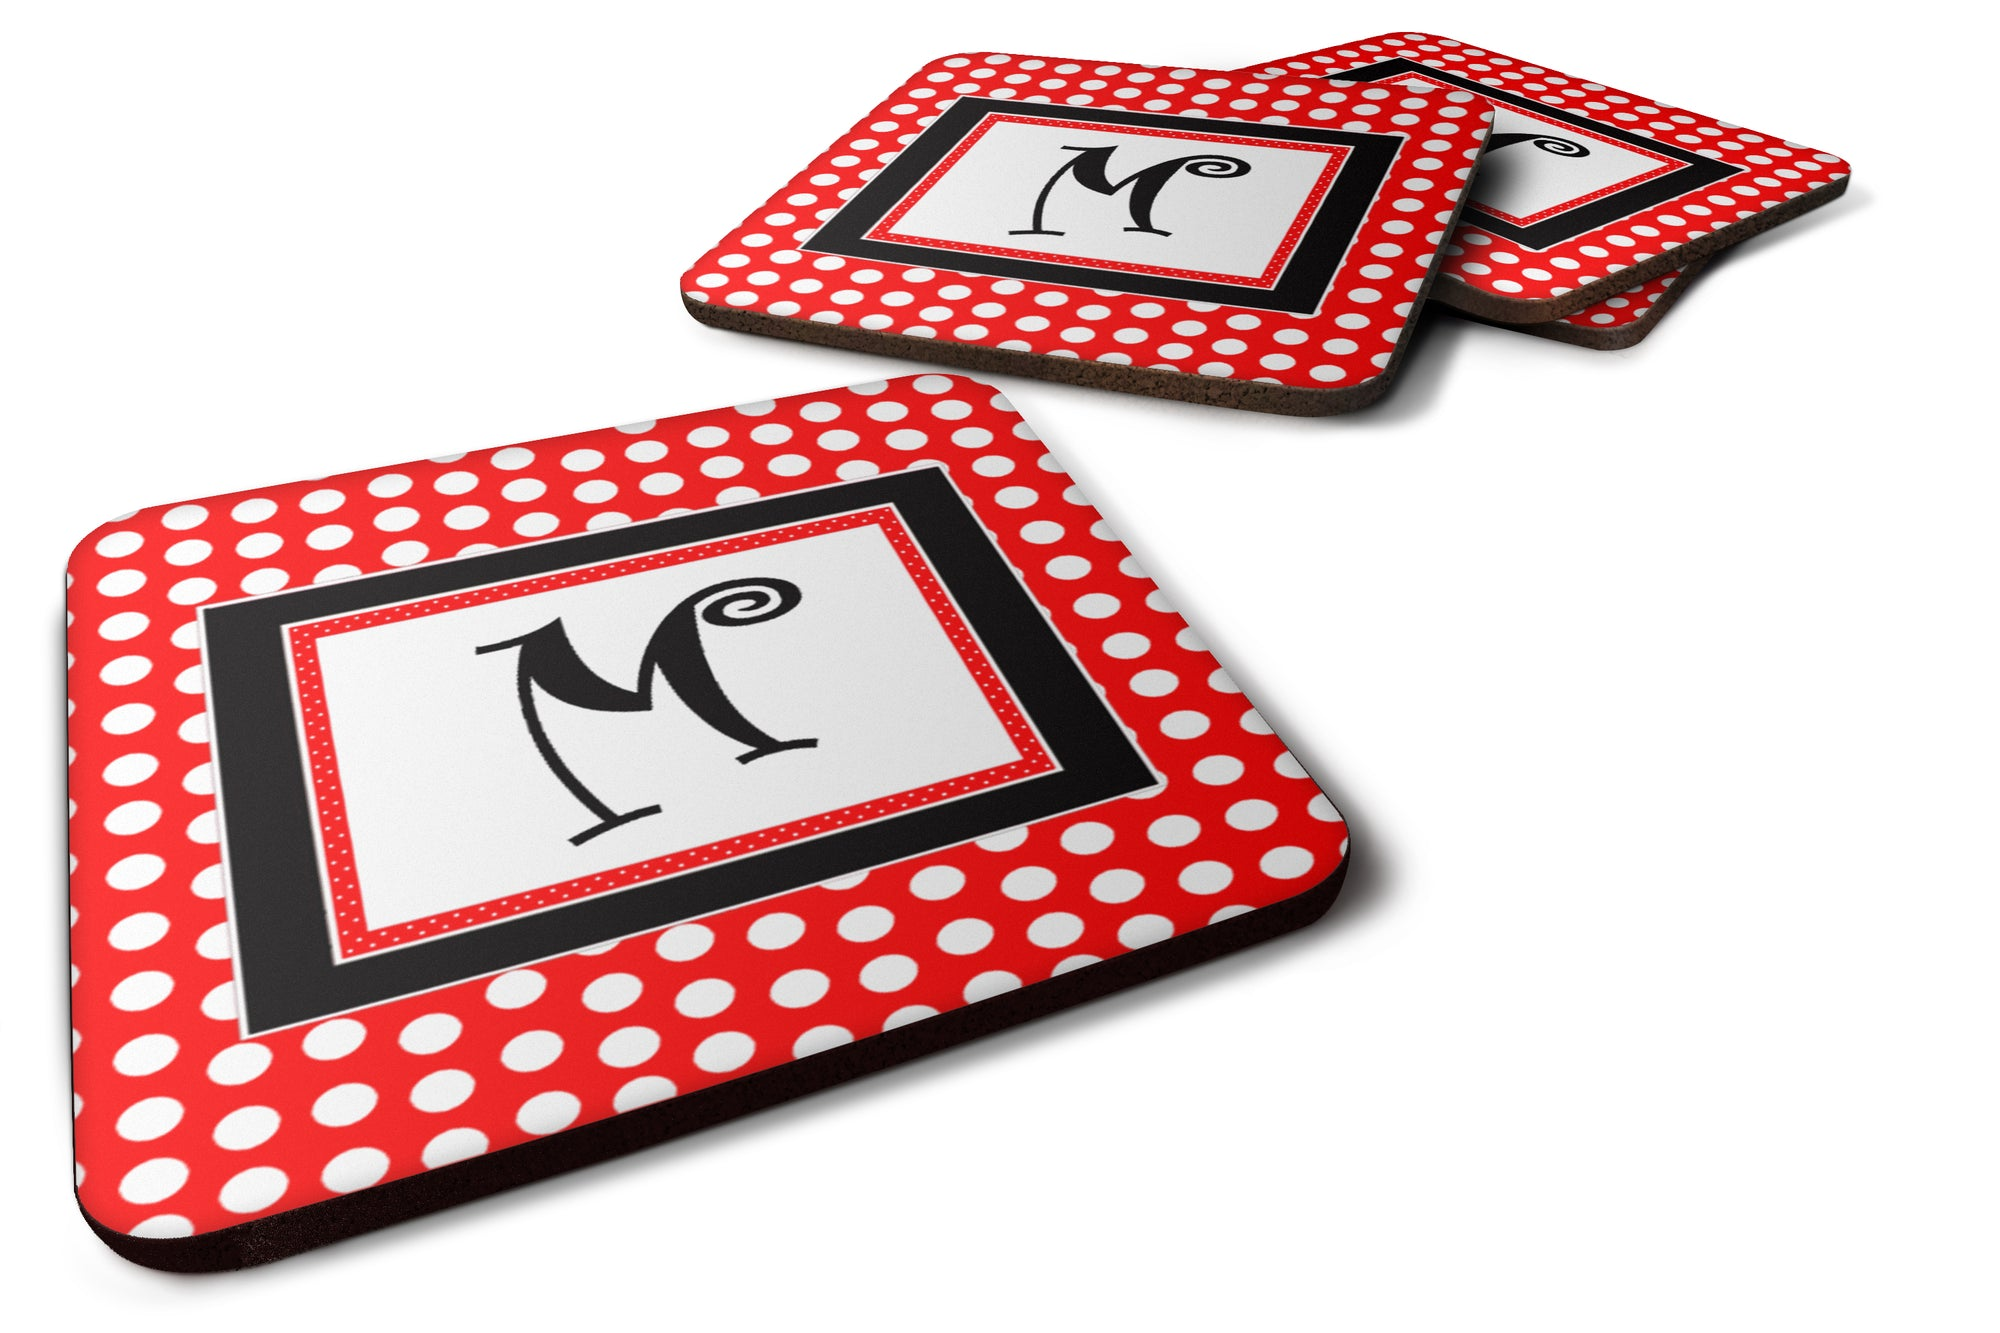 Set of 4 Monogram - Red Black Polka Dots Foam Coasters Initial Letter M by Caroline's Treasures